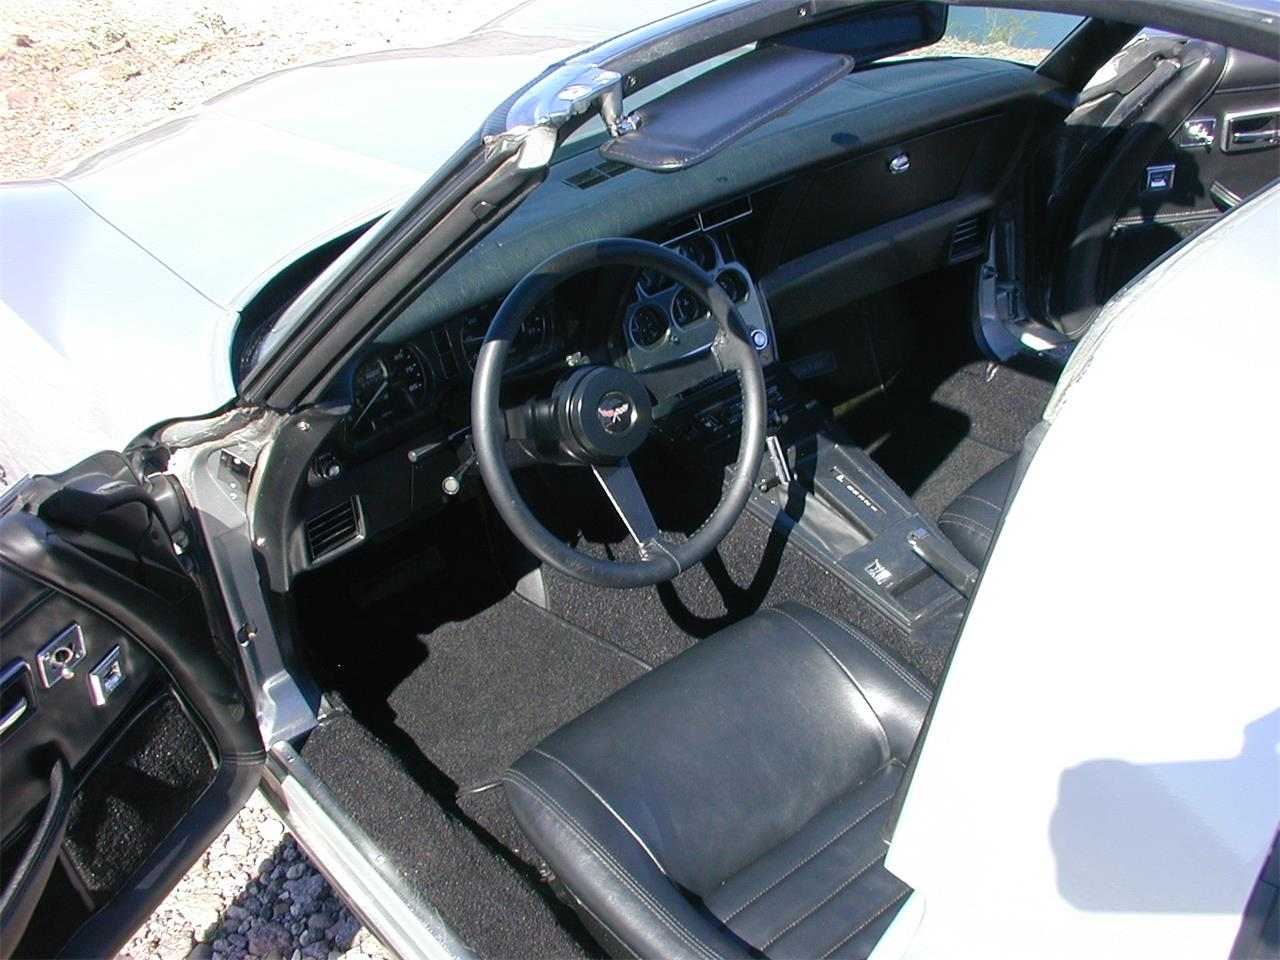 Large Picture of 1980 Corvette located in Laughlin Nevada - $18,500.00 Offered by a Private Seller - DR92